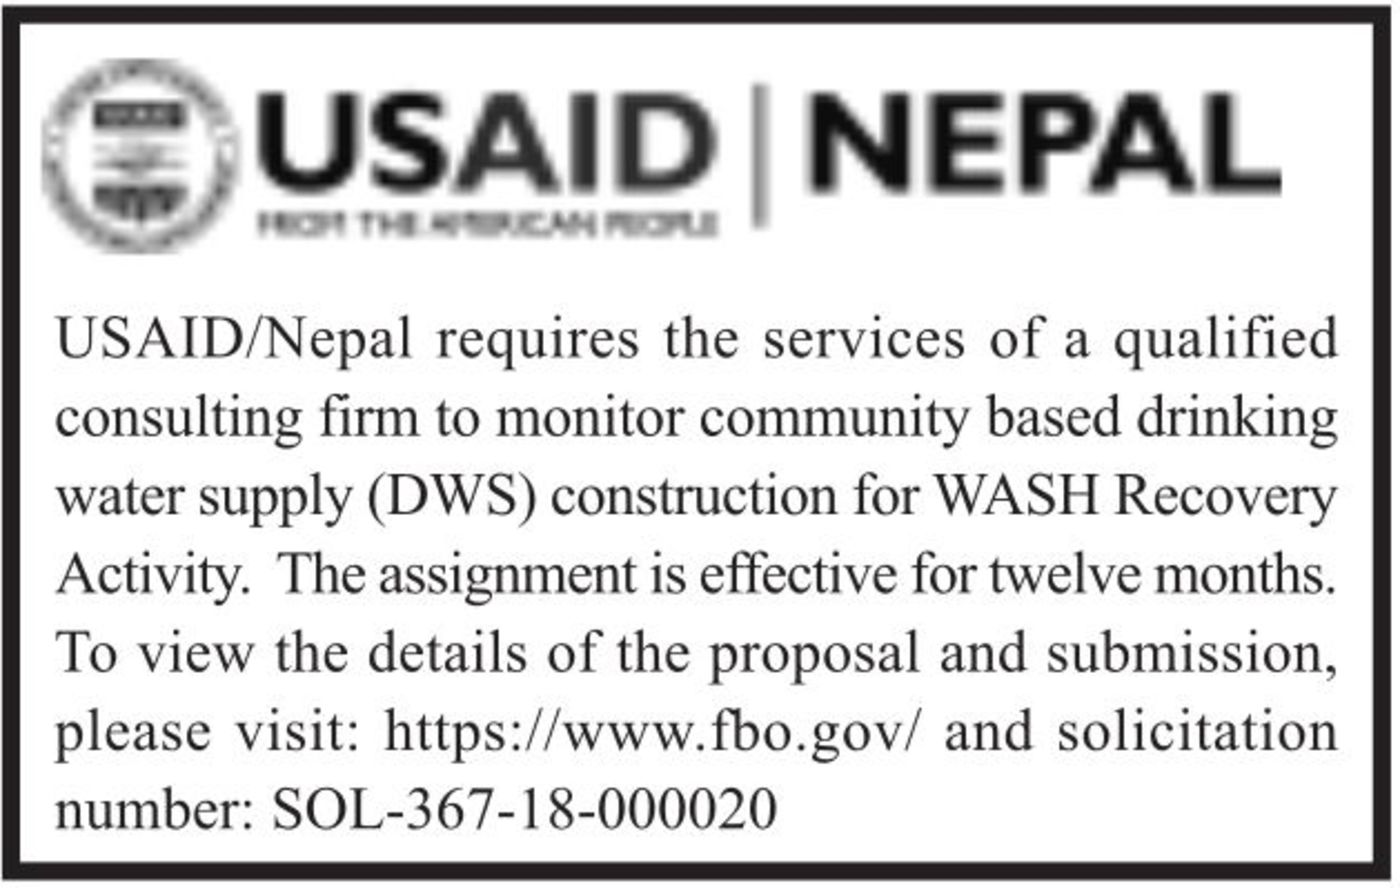 Bids and Tenders Nepal - USAID RFP - Services of a Qualified